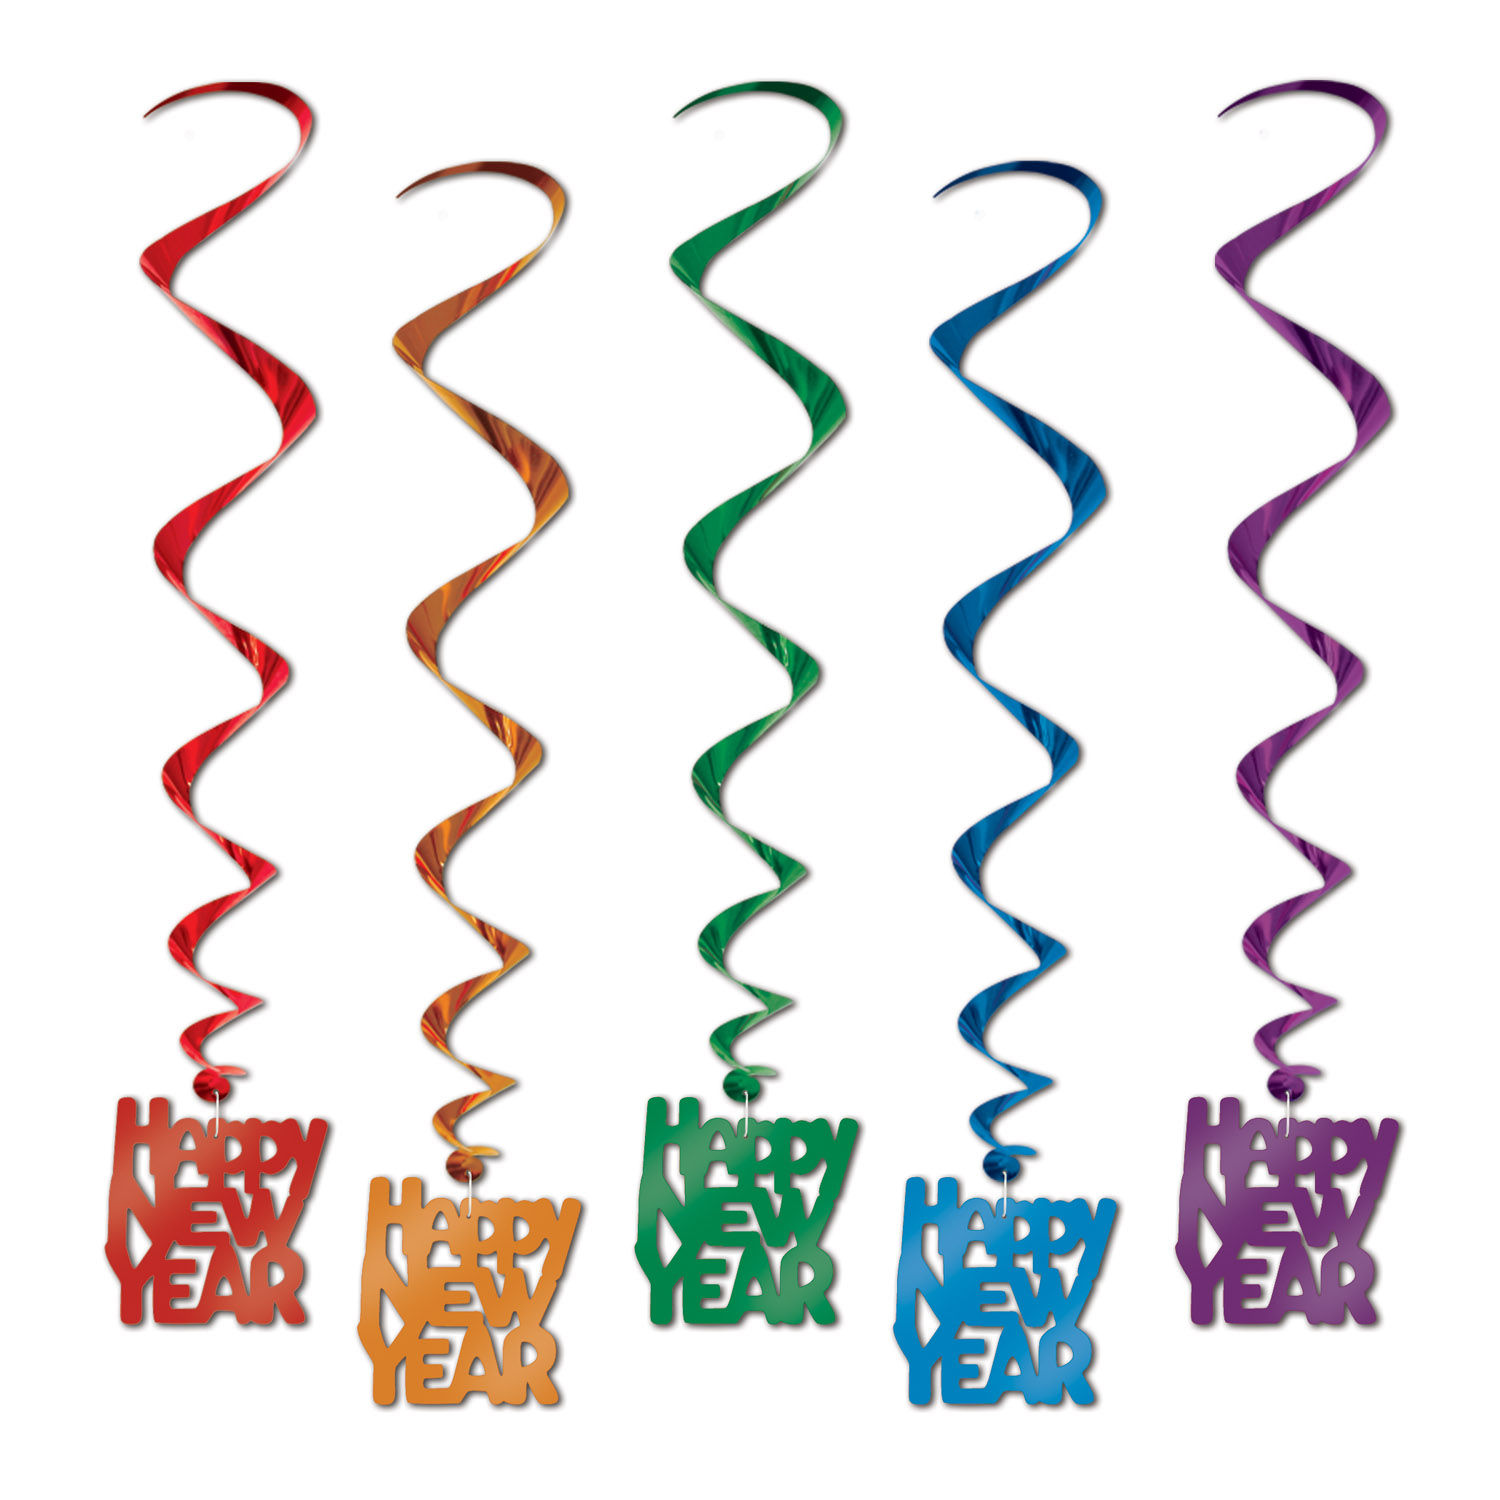 Happy New Year Whirls 33in asstd colors 5 Ct